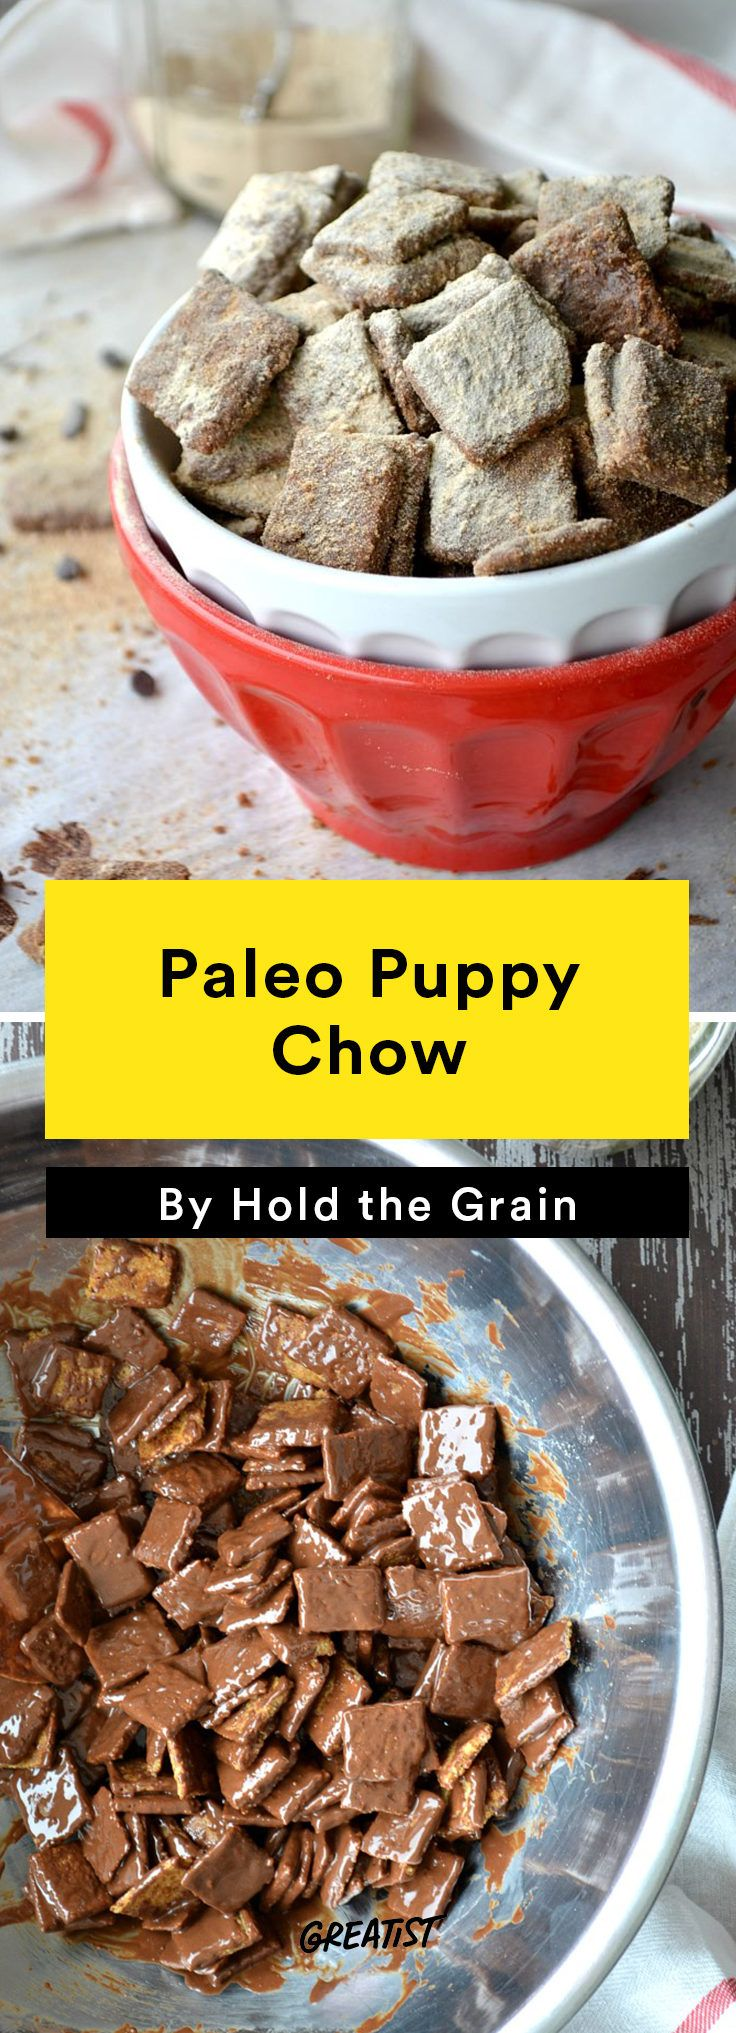 3. Paleo Puppy Chow #greatist http://greatist.com/eat/puppy-chow-recipes-that-are-healthier-than-you-remember